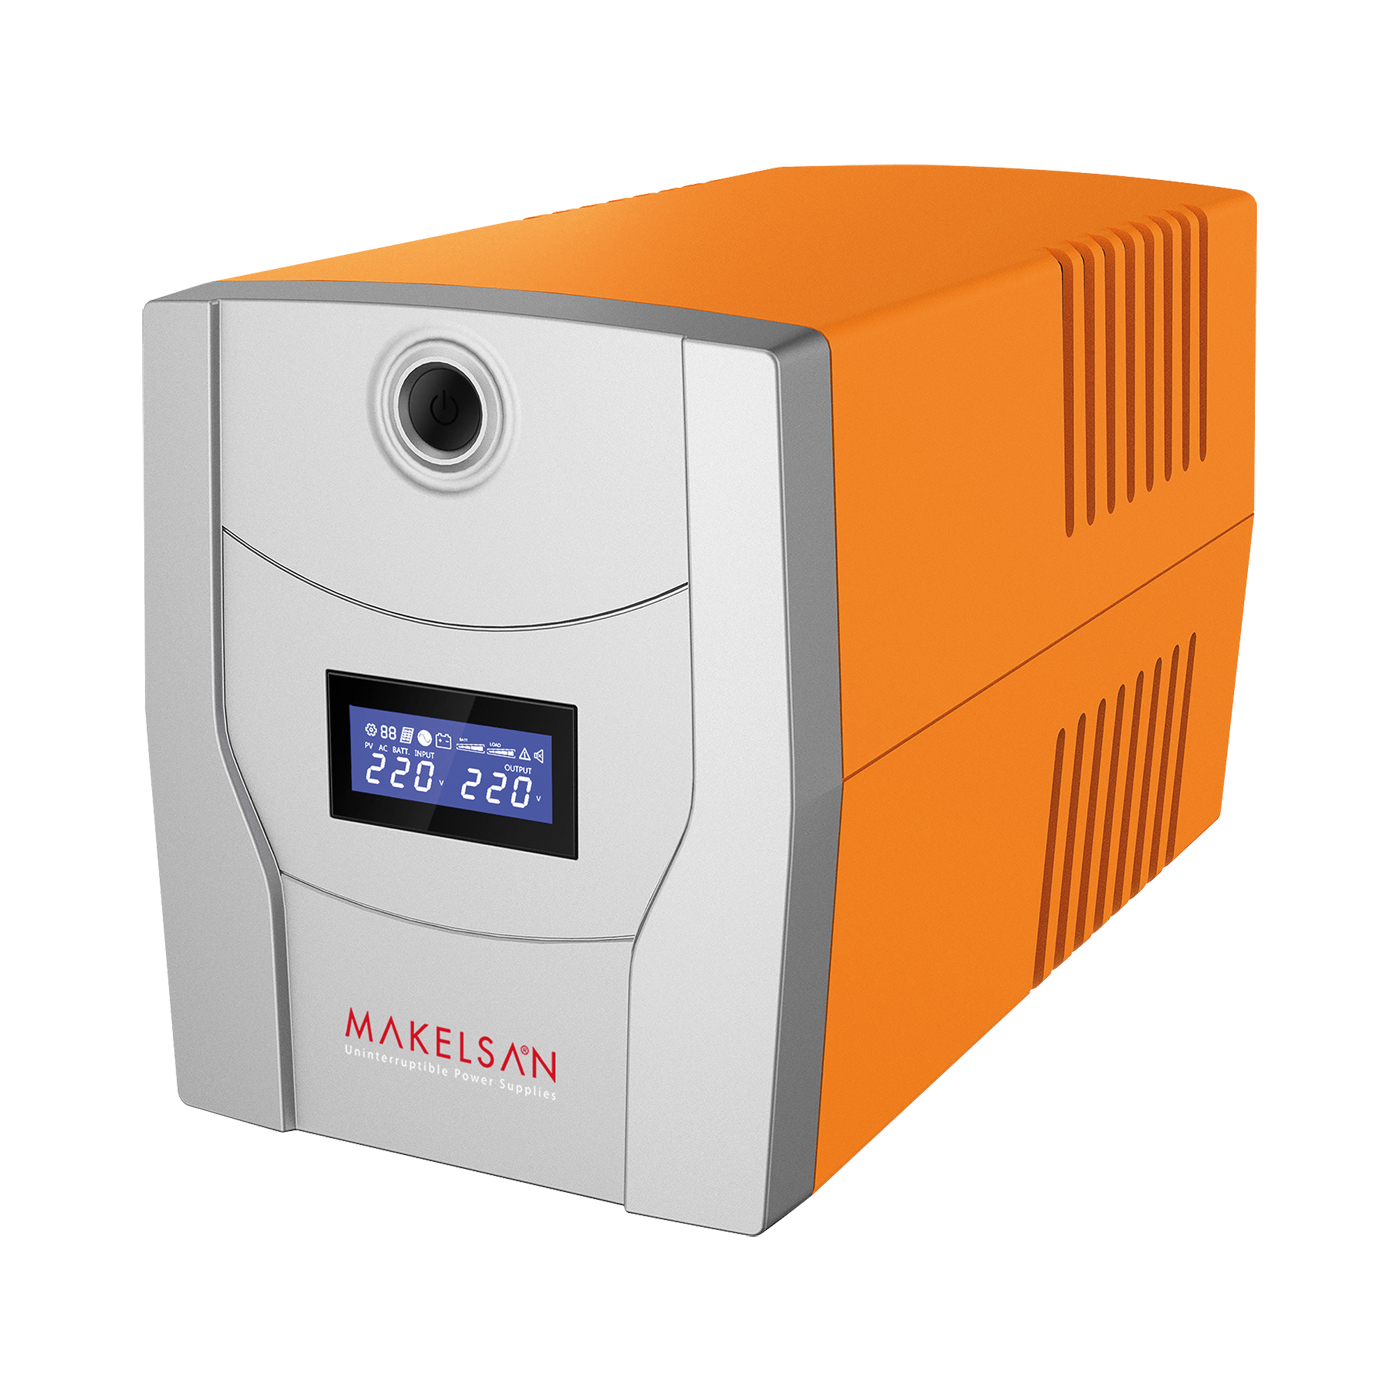 MAKELSAN LION X 2200VA 2x12V/9AH LINE INTERACTIVE UPS MU02200L11MP005